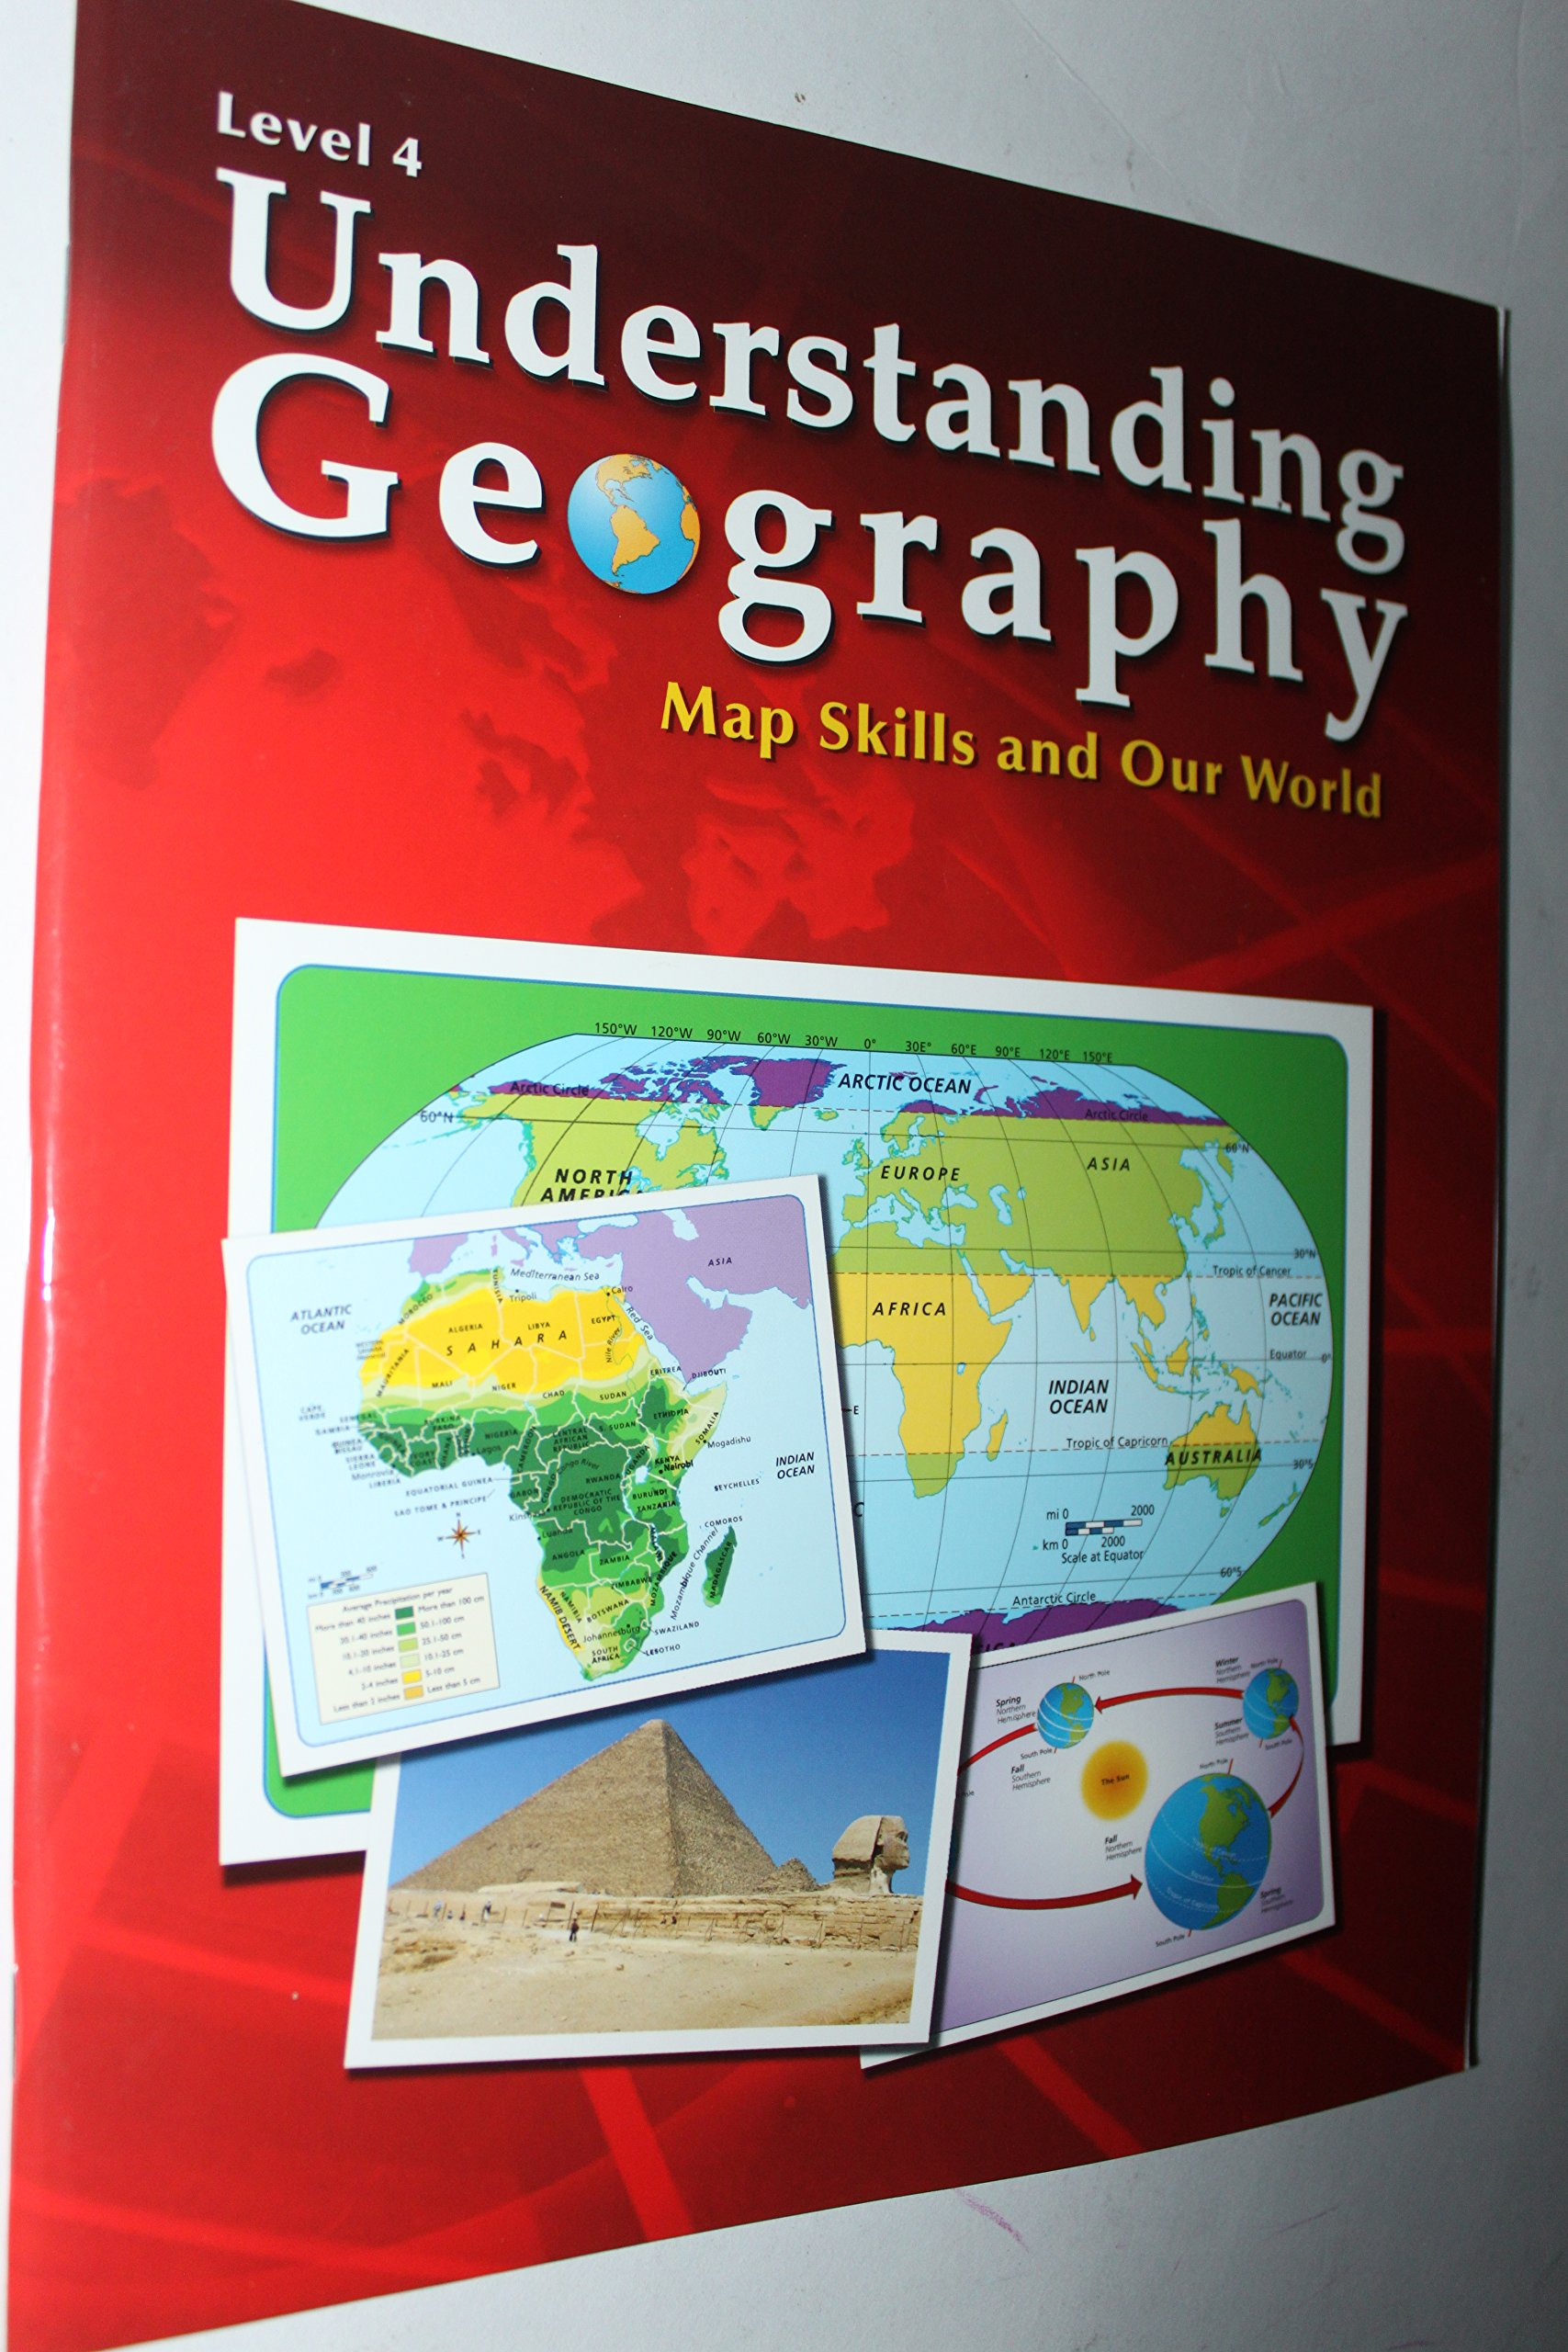 Understanding Geography Level 4 - Map skills and our world ... on culture world maps, service world maps, black and white world maps, helpful world maps, teaching world maps, practice world maps, reliable world maps, sweet world maps, creative world maps, pattern world maps,